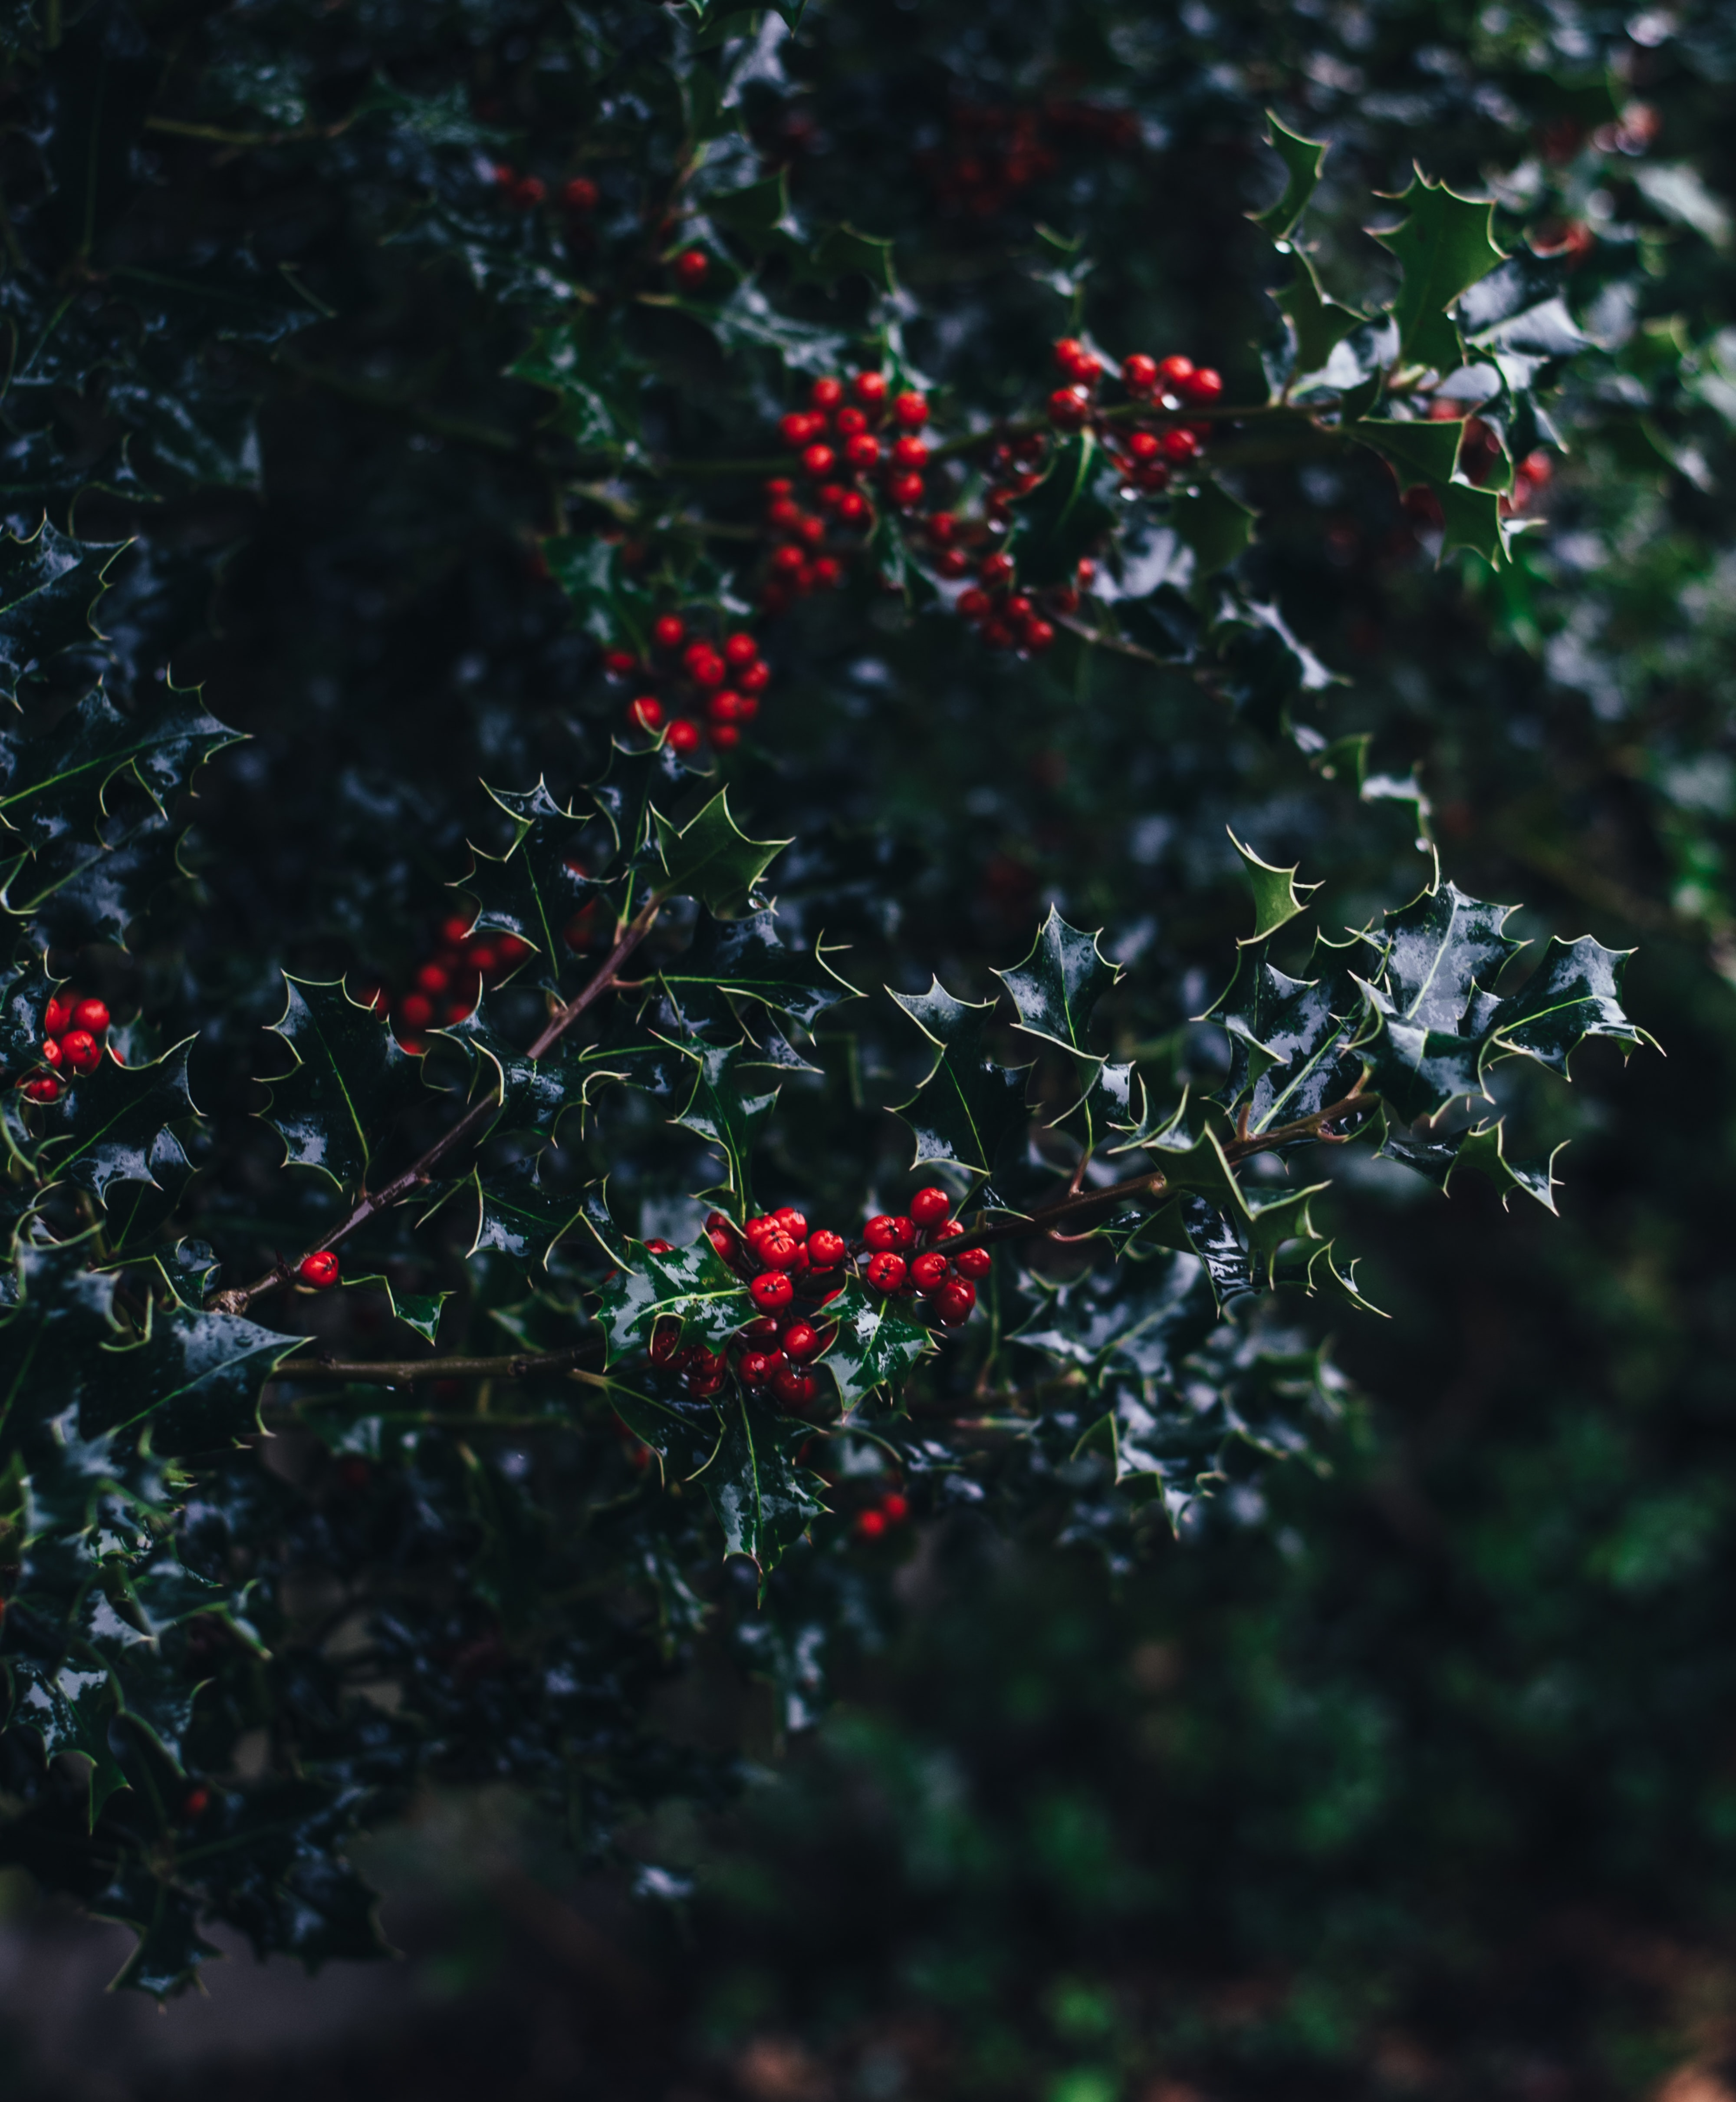 A macro view of festive Christmas leaves and berries on a tree.